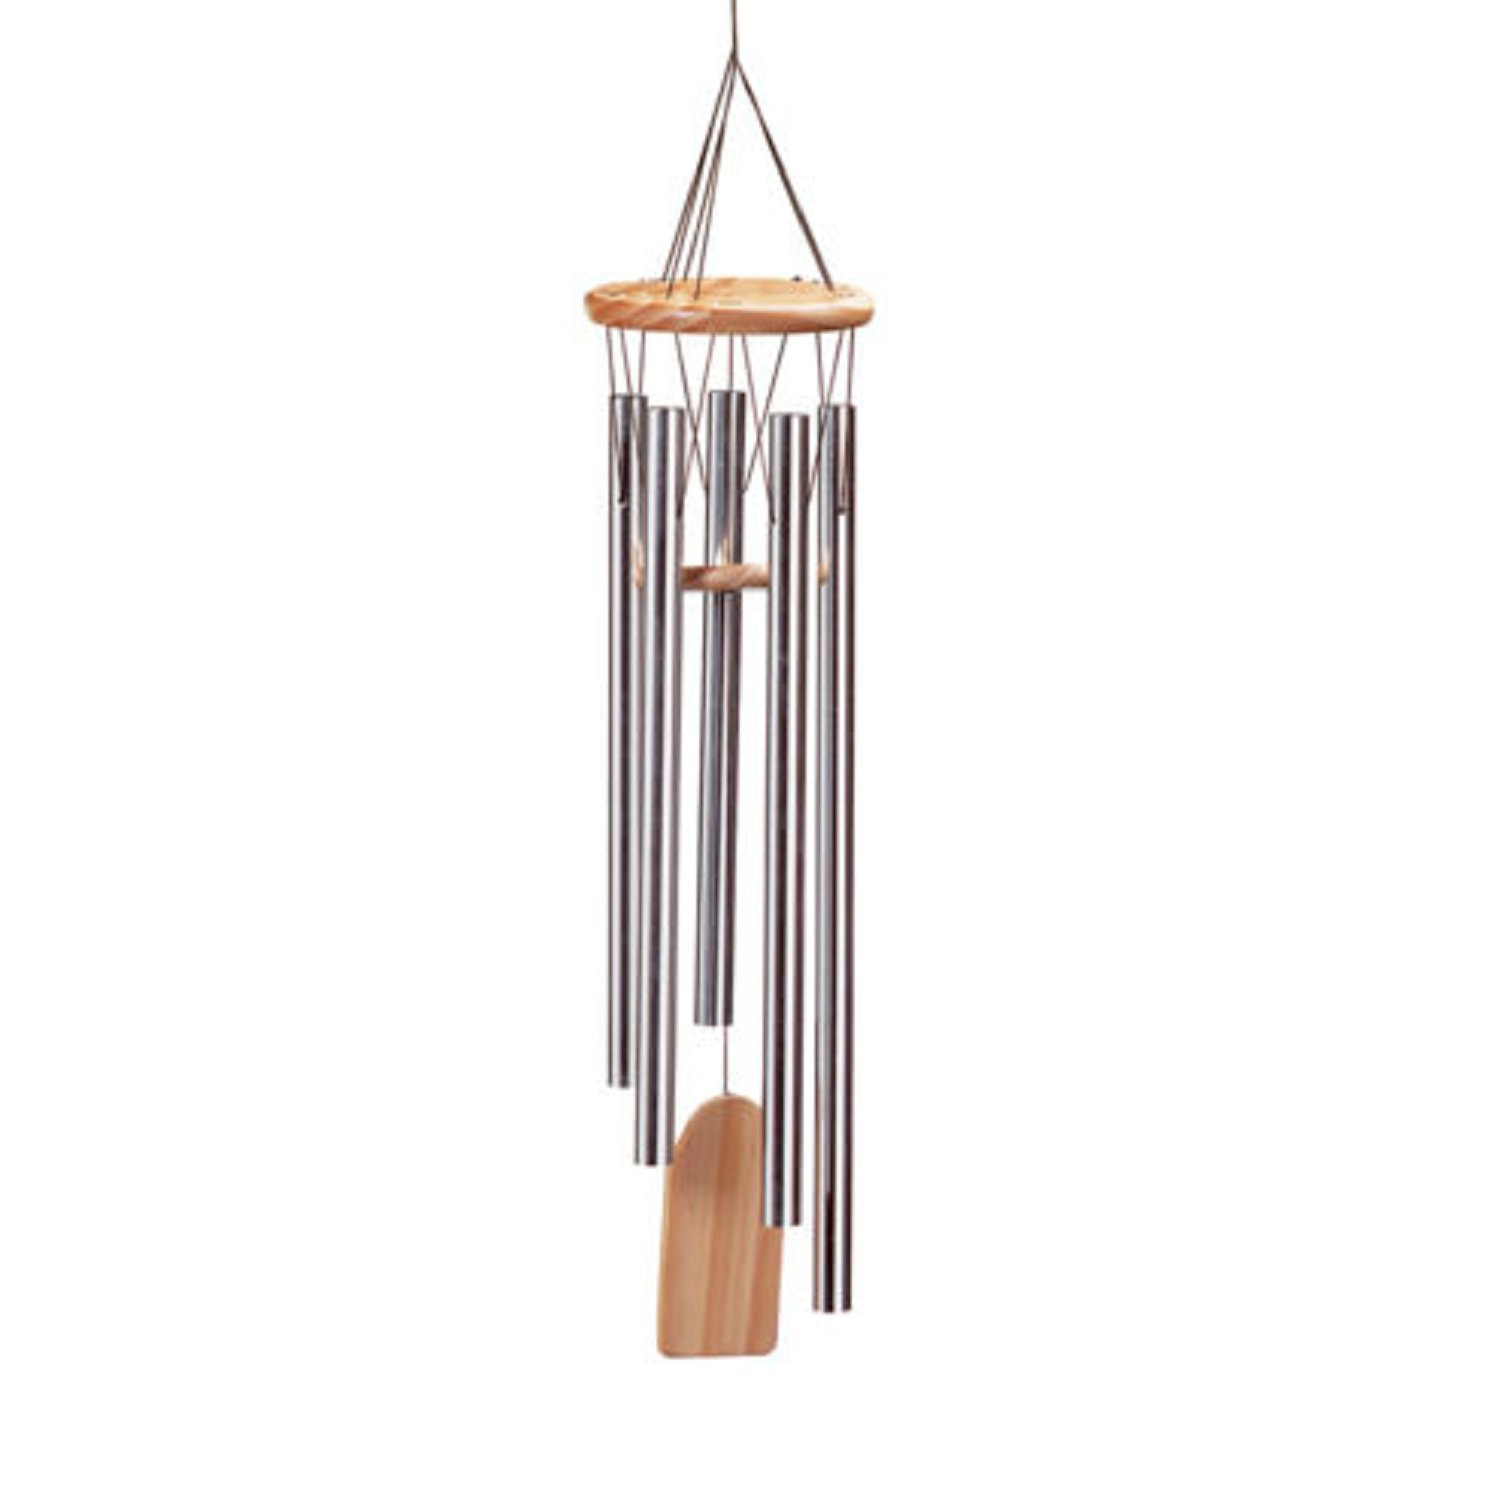 USA Premium Store large Deep Tone resonant gong bass sound Chapel CHURCH BELL Windchime Wind Chime